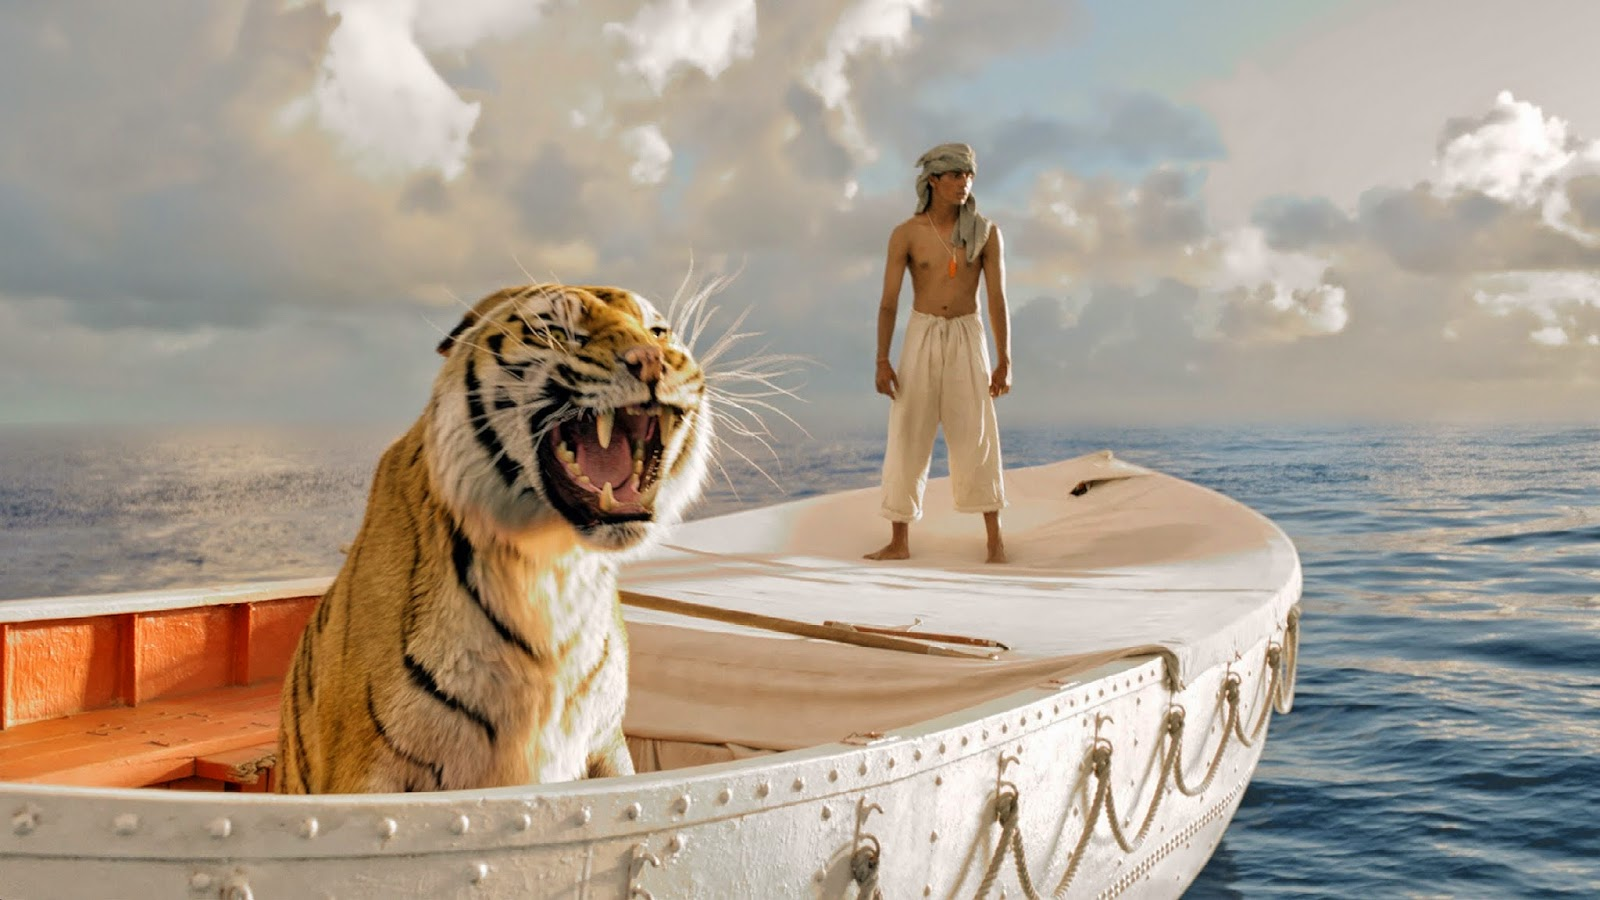 On a lifeboat with a Bengal tiger, Ang Lee